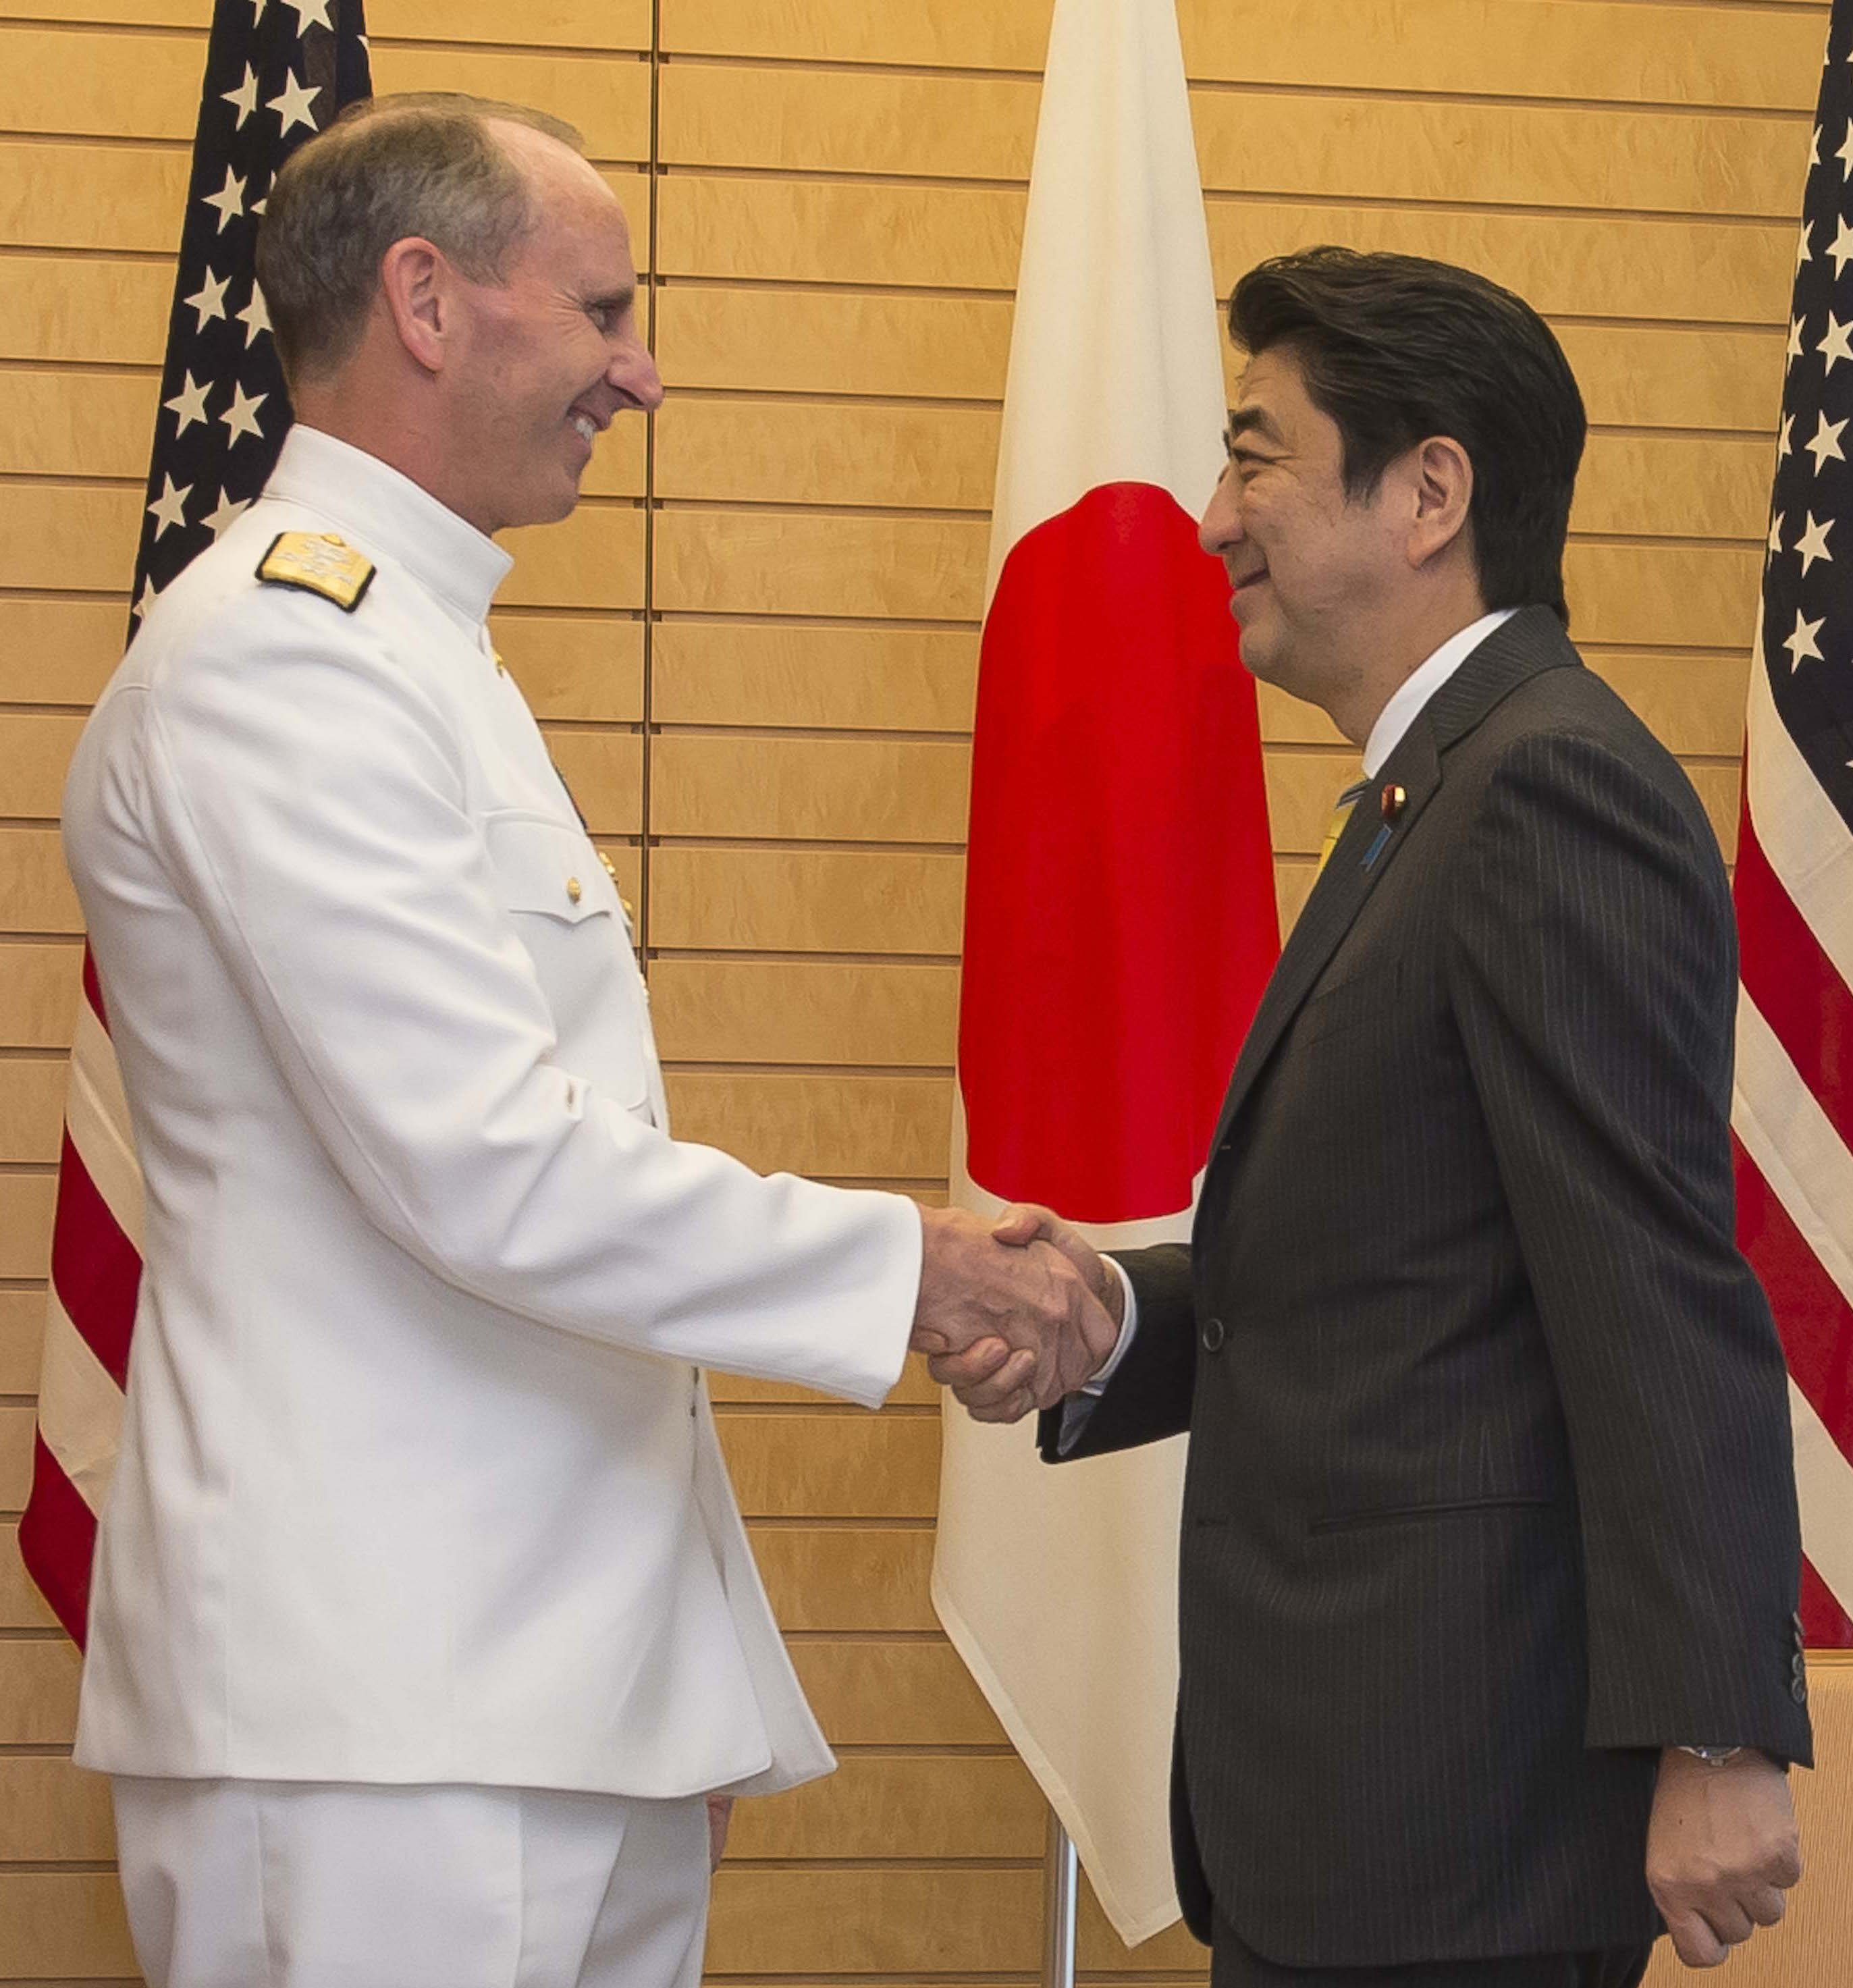 Chief of Naval Operations Adm. Jonathan Greenert meets with the Prime Minister of Japan Shinzo Abe on May 26, 2014. US Navy Photo